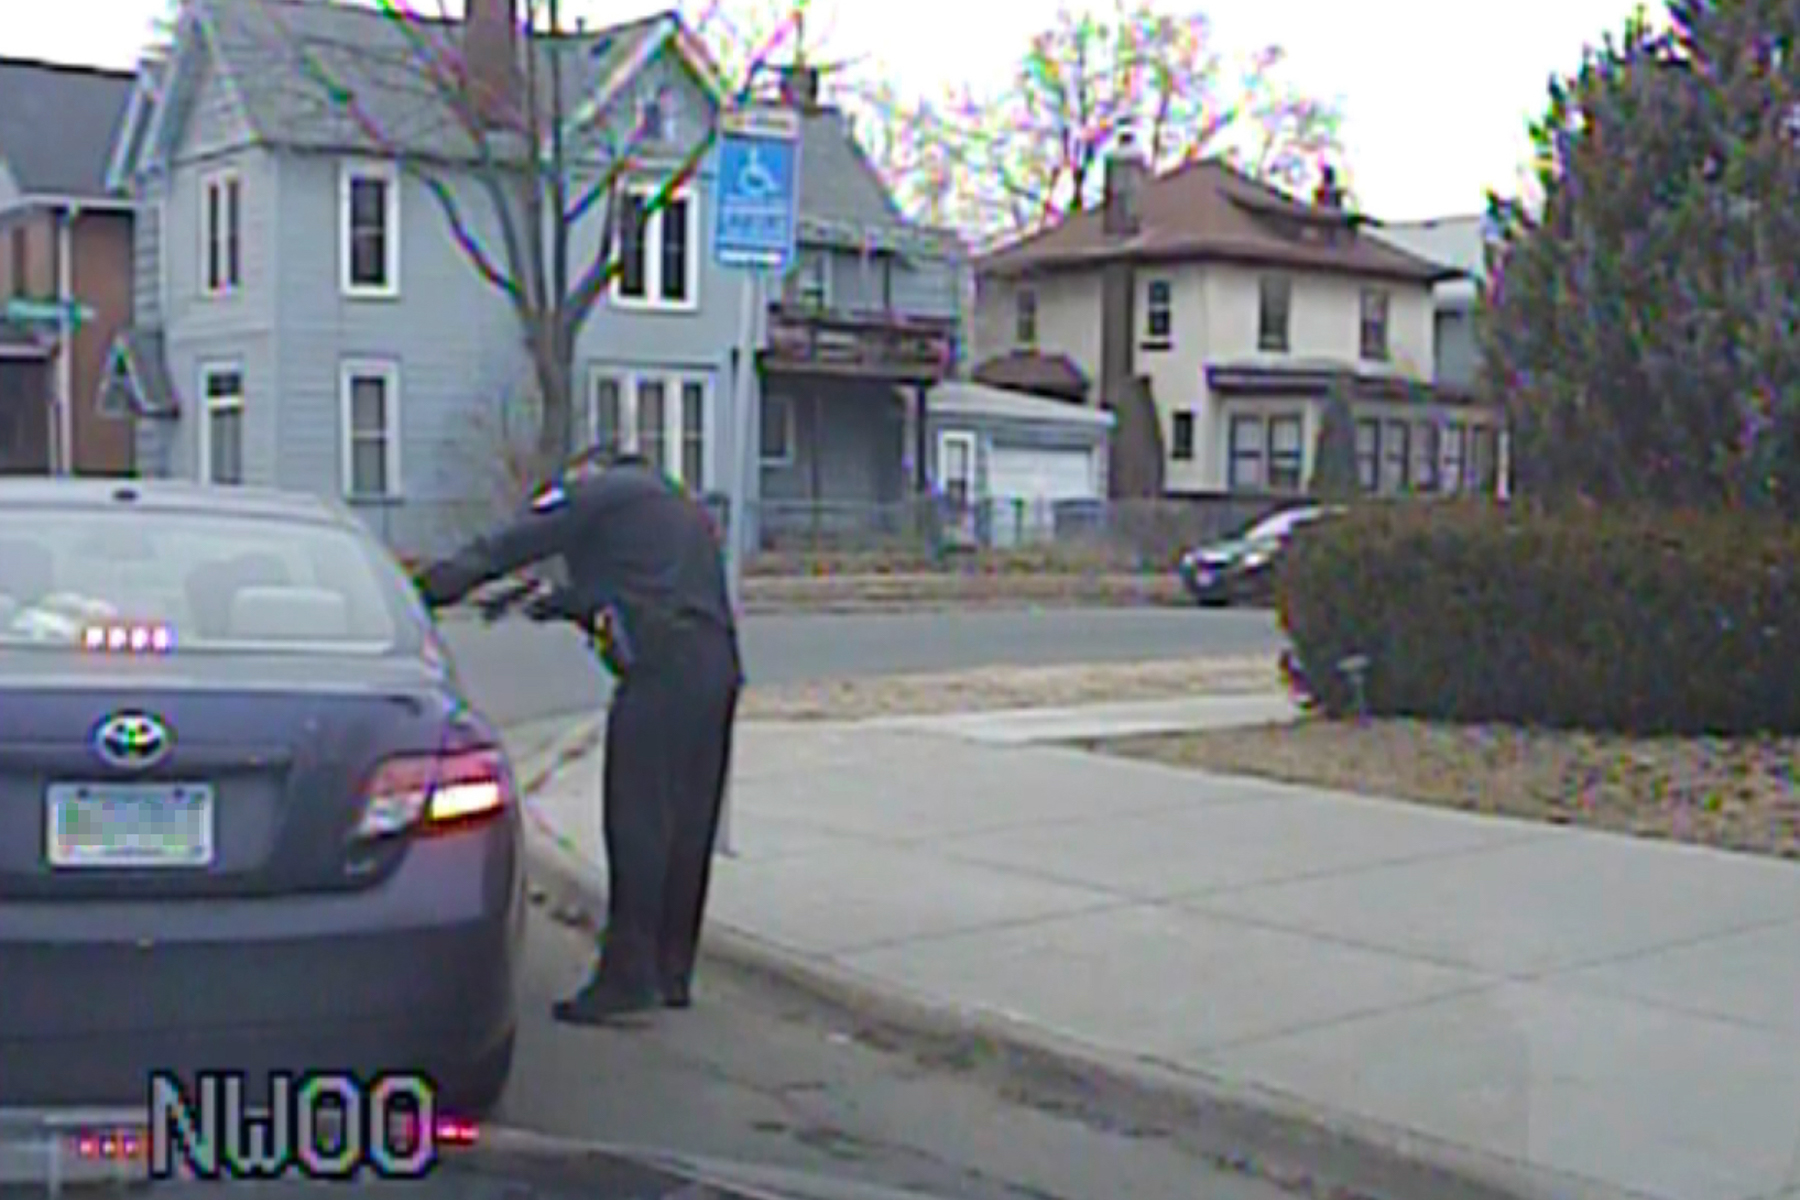 A police officer stands outside a car and points his guns at Somali teens inside in Minneapolis